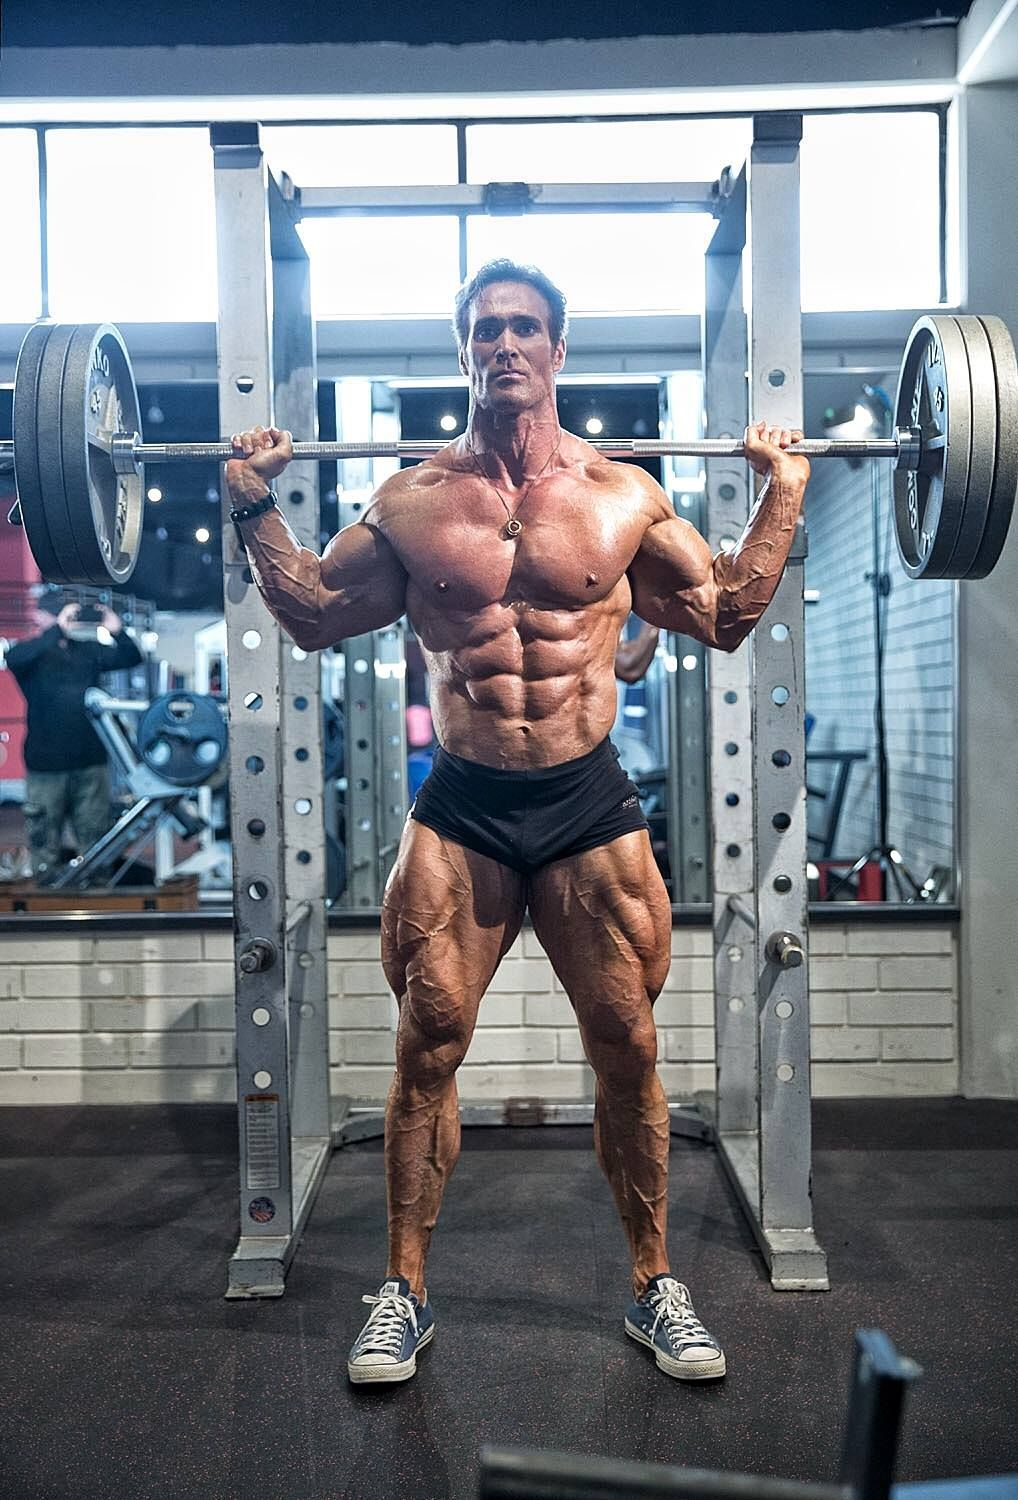 Mike O'Hearn | bodybuilding | Workout aesthetic